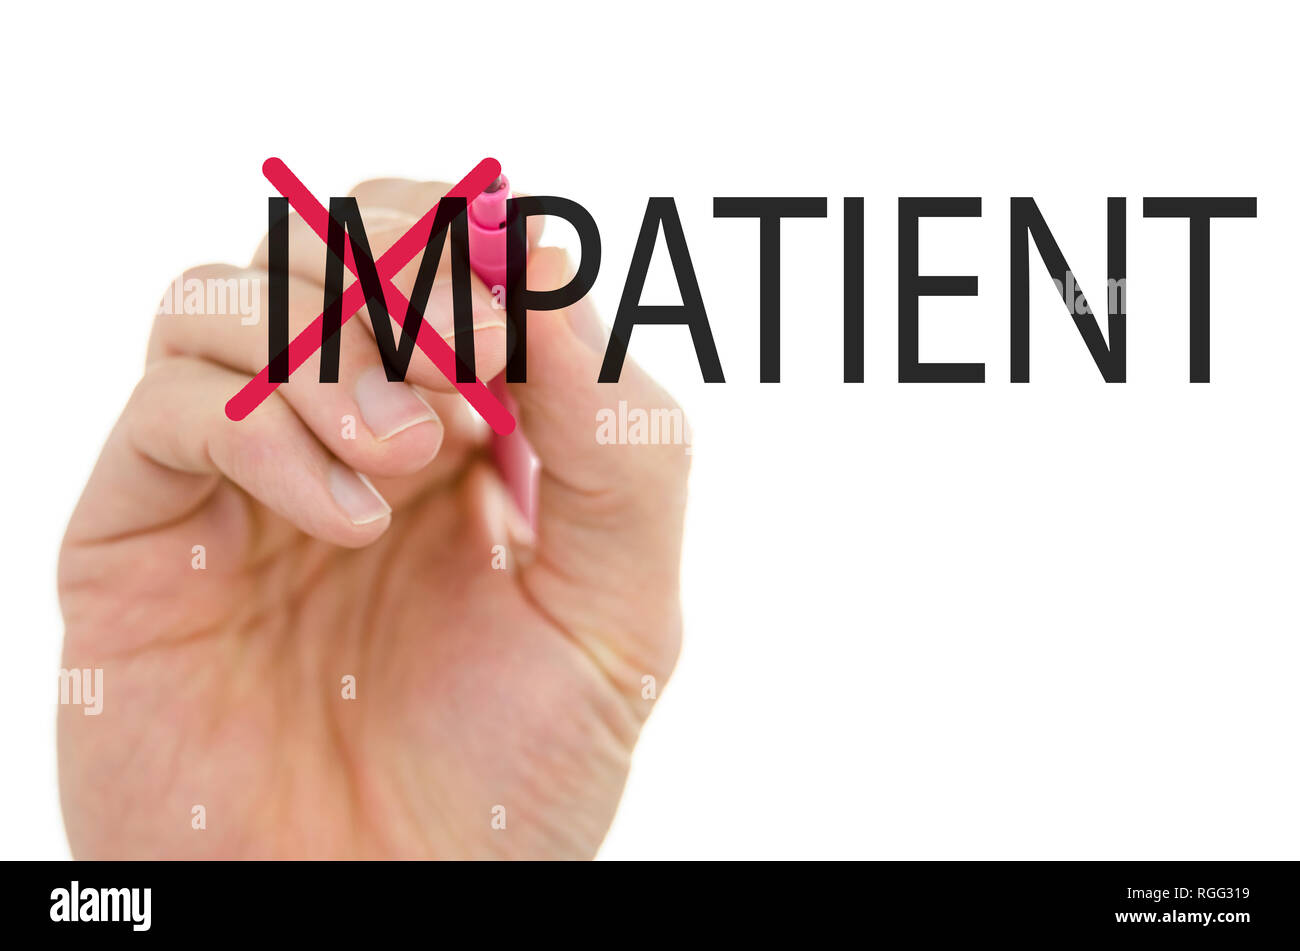 Turning the word Impatient into Patient by crossing off letter IM. - Stock Image